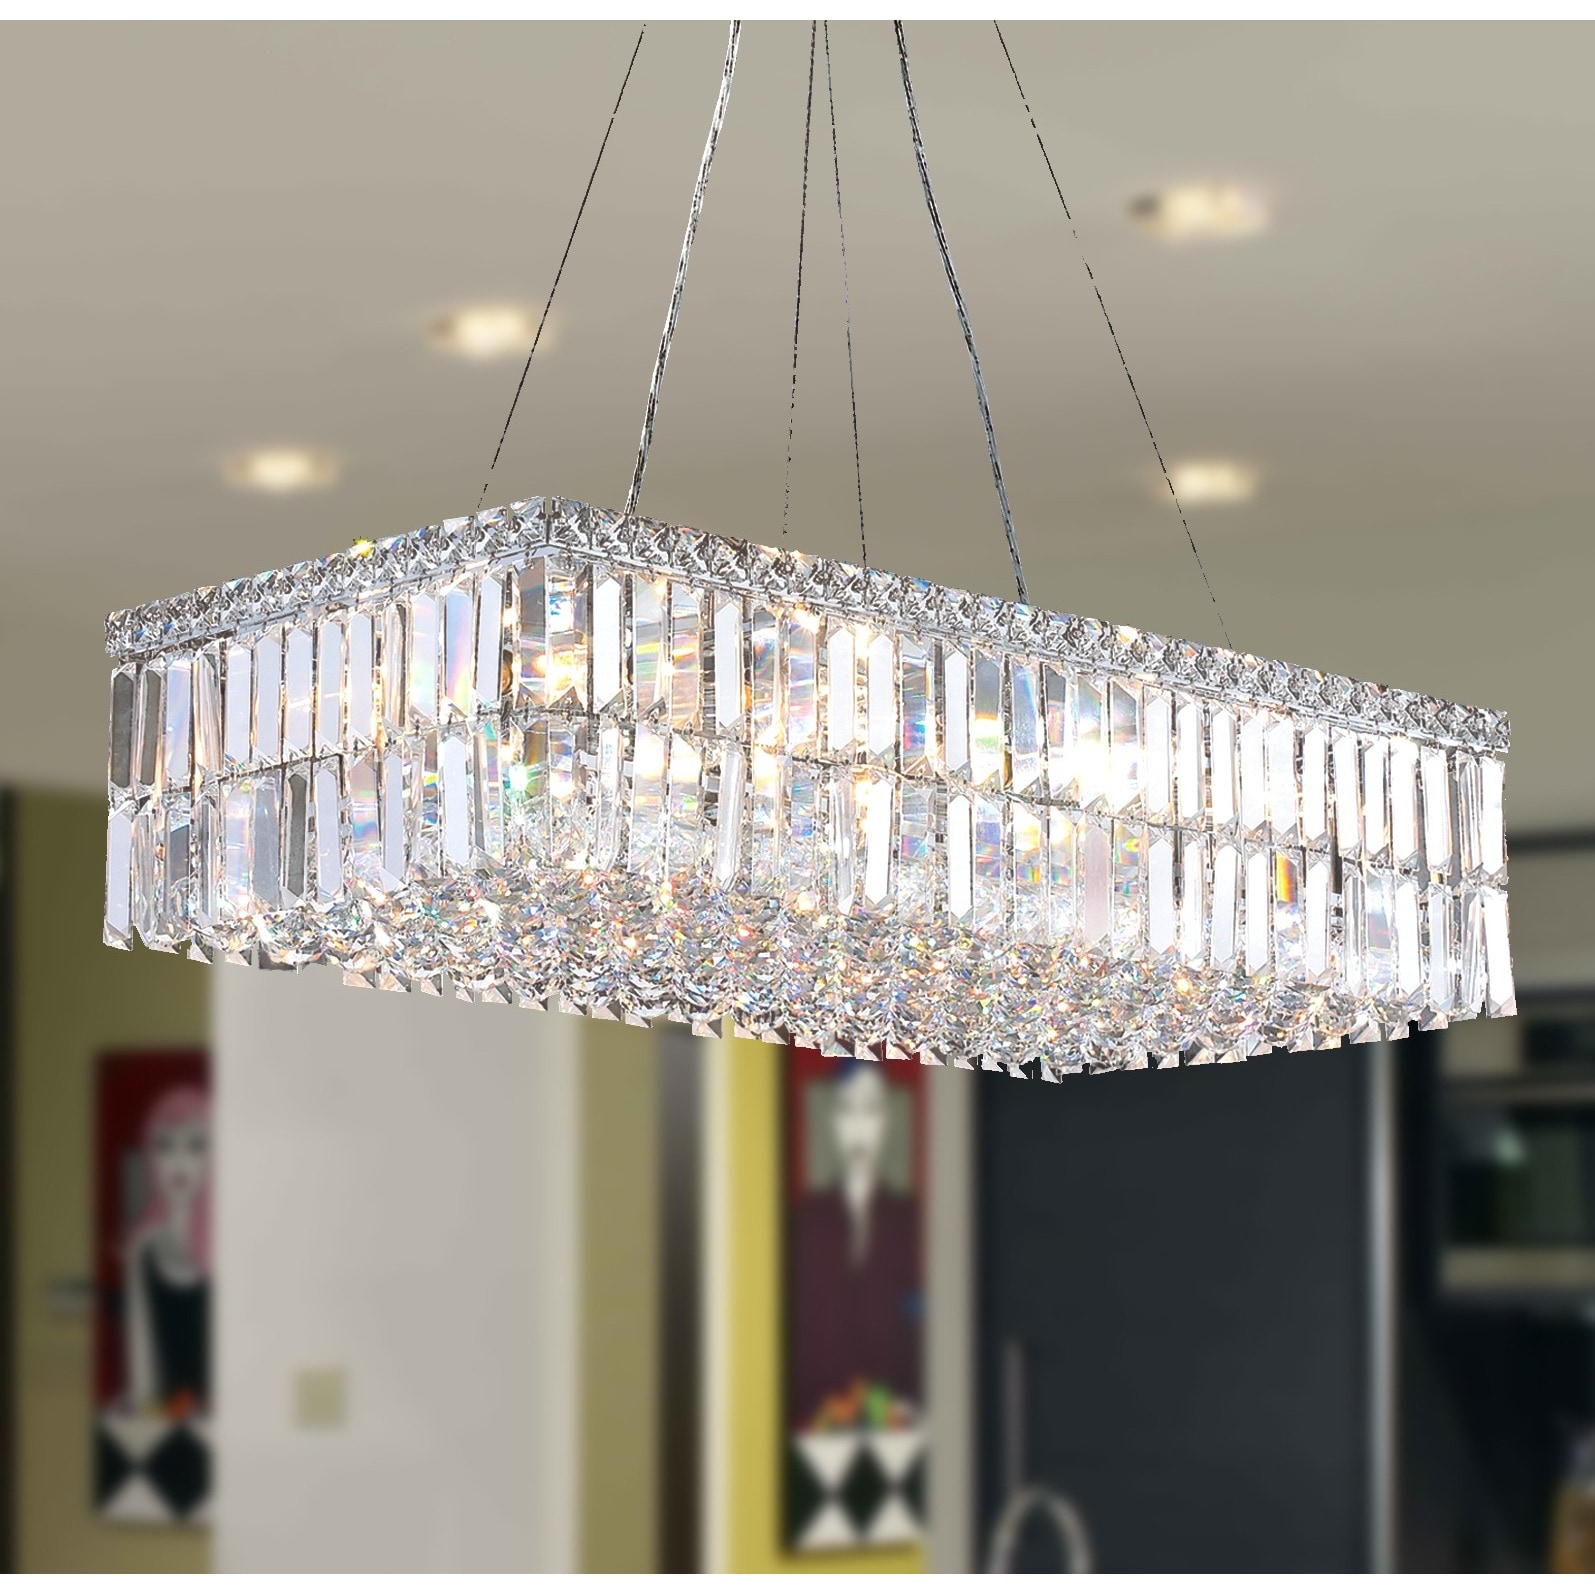 Modern art deco style 16 light chrome finish clear crystal modern art deco style 16 light chrome finish clear crystal rectangle chandelier 28 l free shipping today overstock 17654207 arubaitofo Image collections